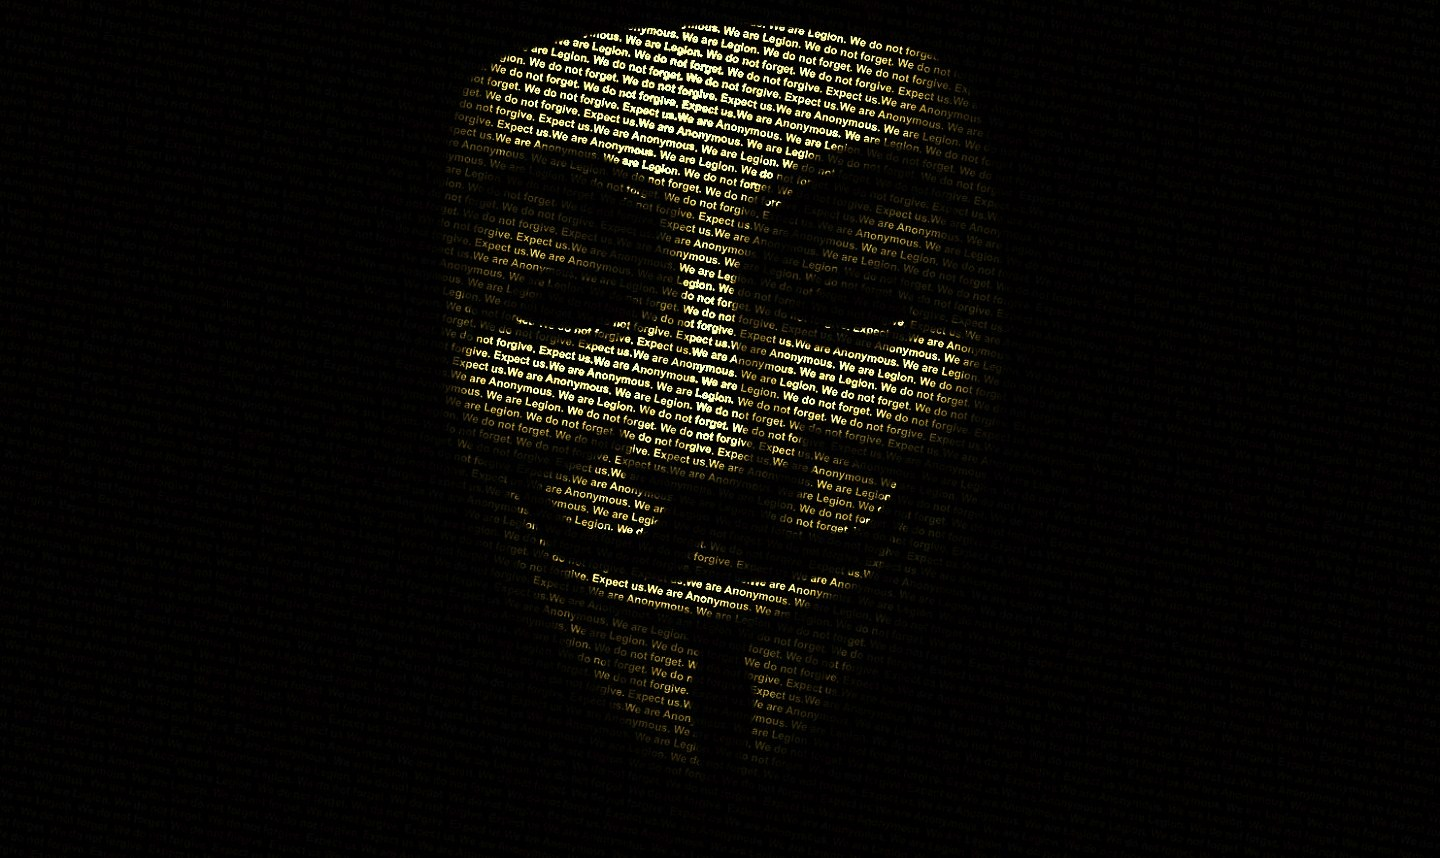 amazon where can i buy thoughts on Être anonyme sur Internet – Le Blog du Hacker